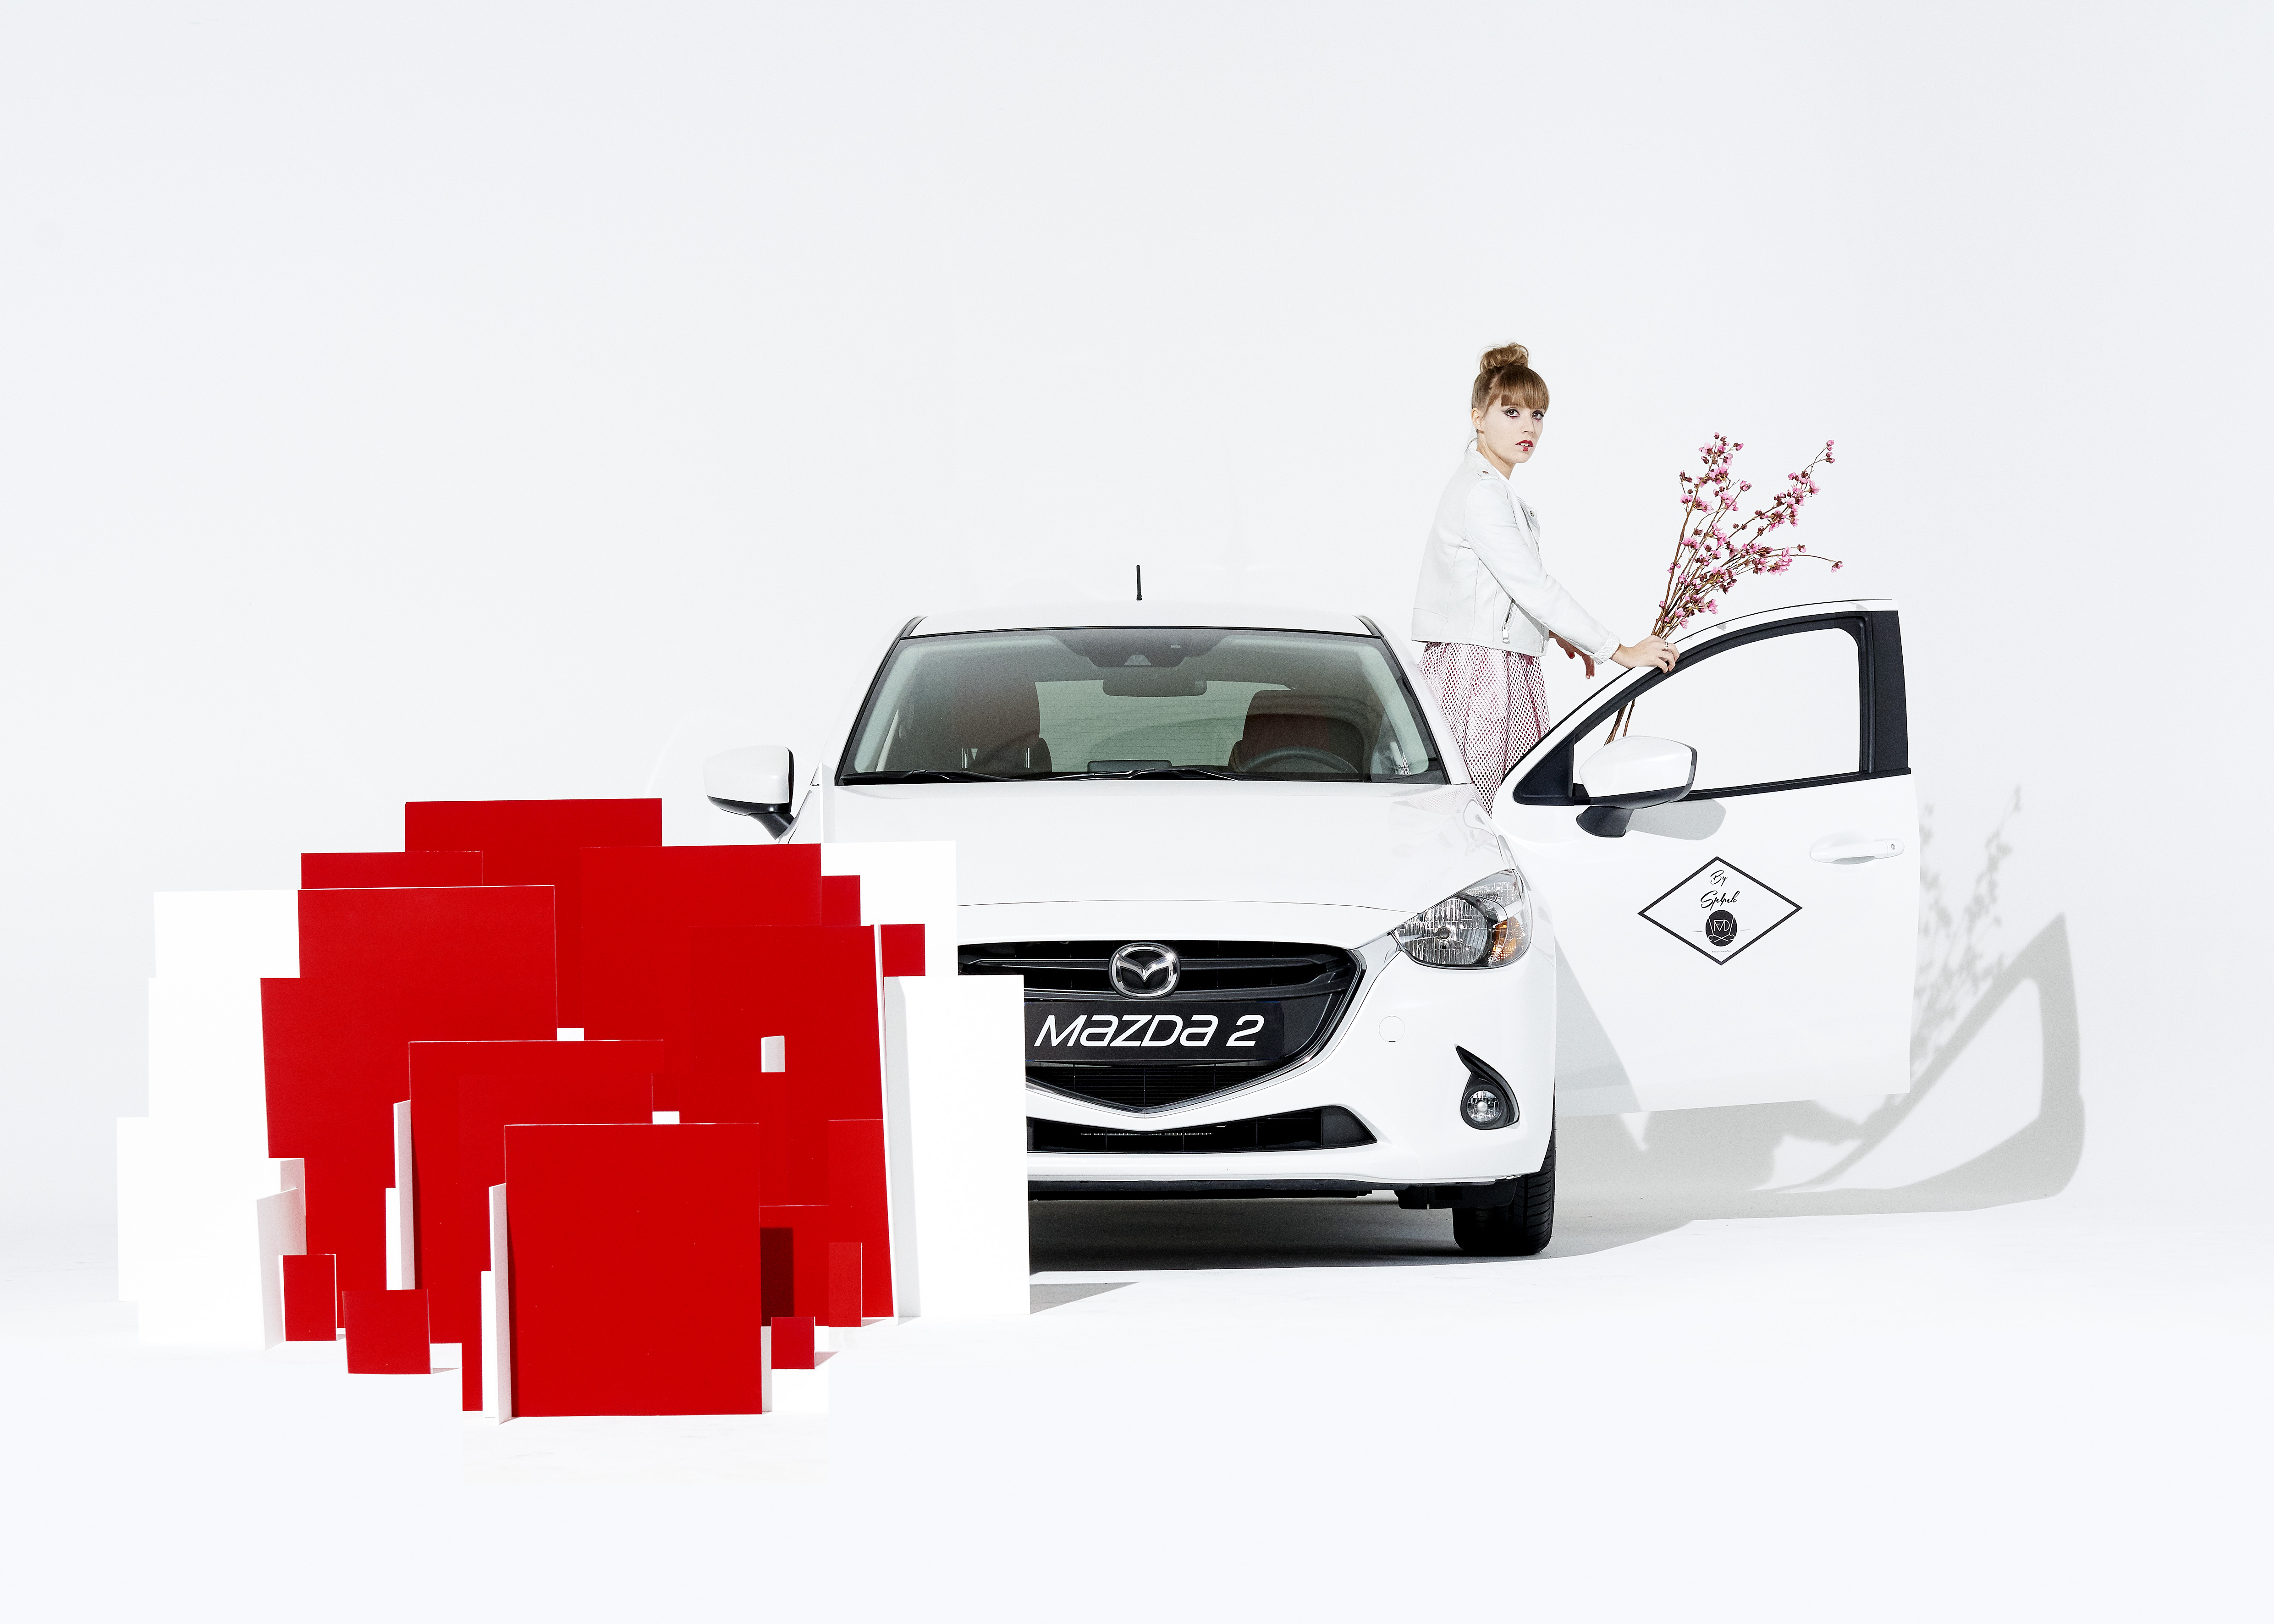 Campagne pour Mazda 2 sp4nk blog